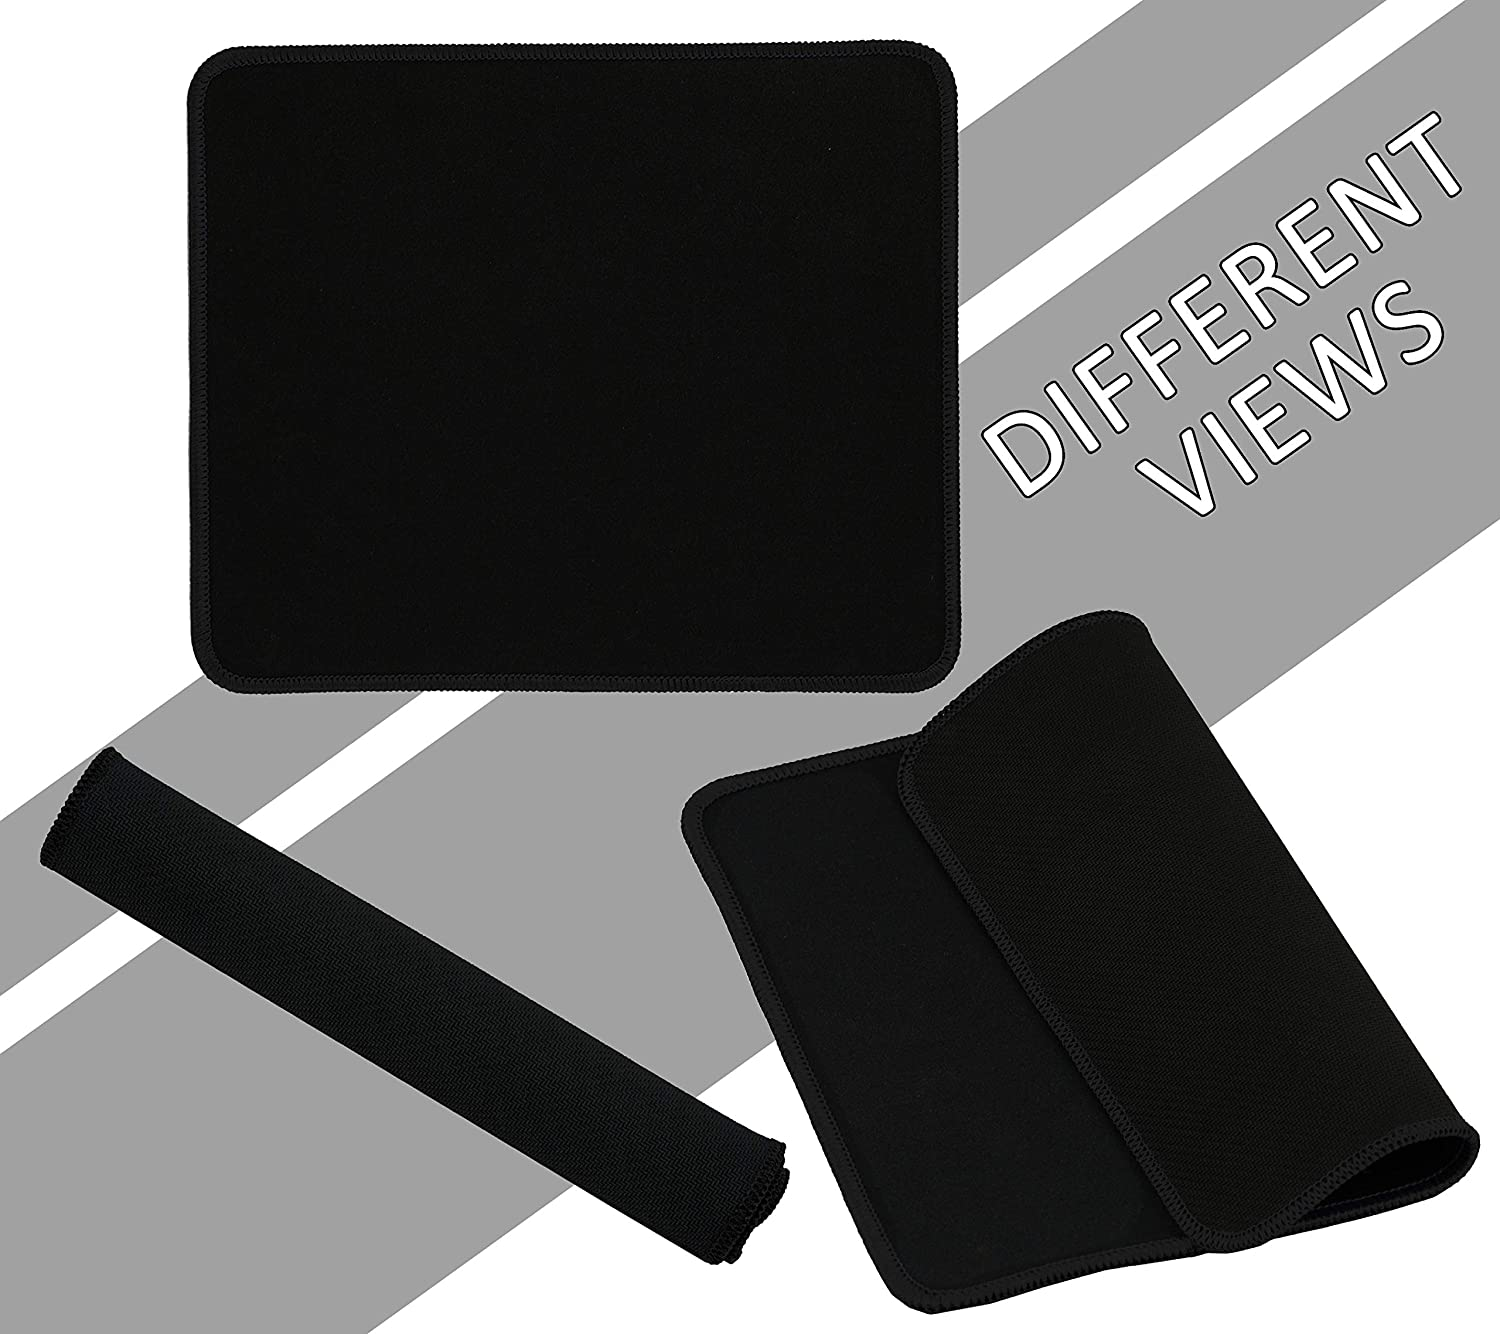 5 Pack Mouse Pad with Stitched Edges Mousepads Bulk Non-Slip Rubber Base Office /& Home - Laptop 250 x 210 x 2mm - Black Border Waterproof Coating Mouse Pads for Computers